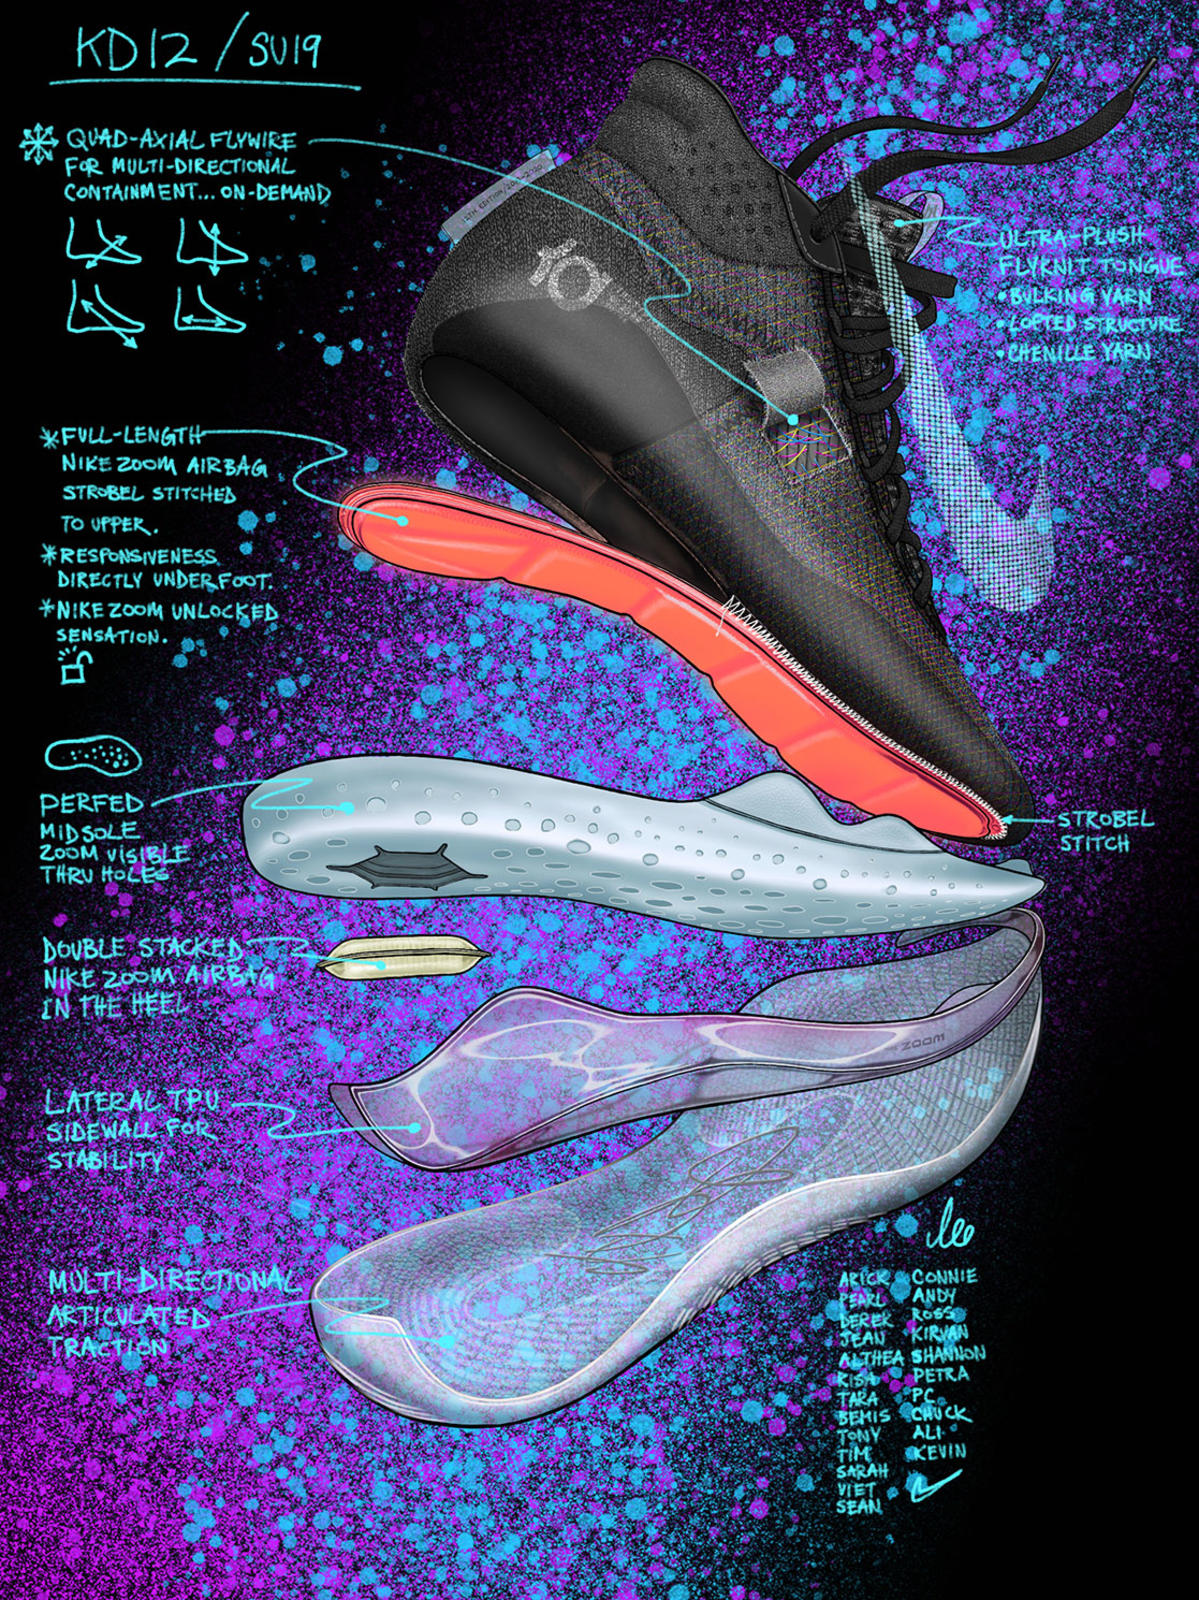 Behind The KD12 12